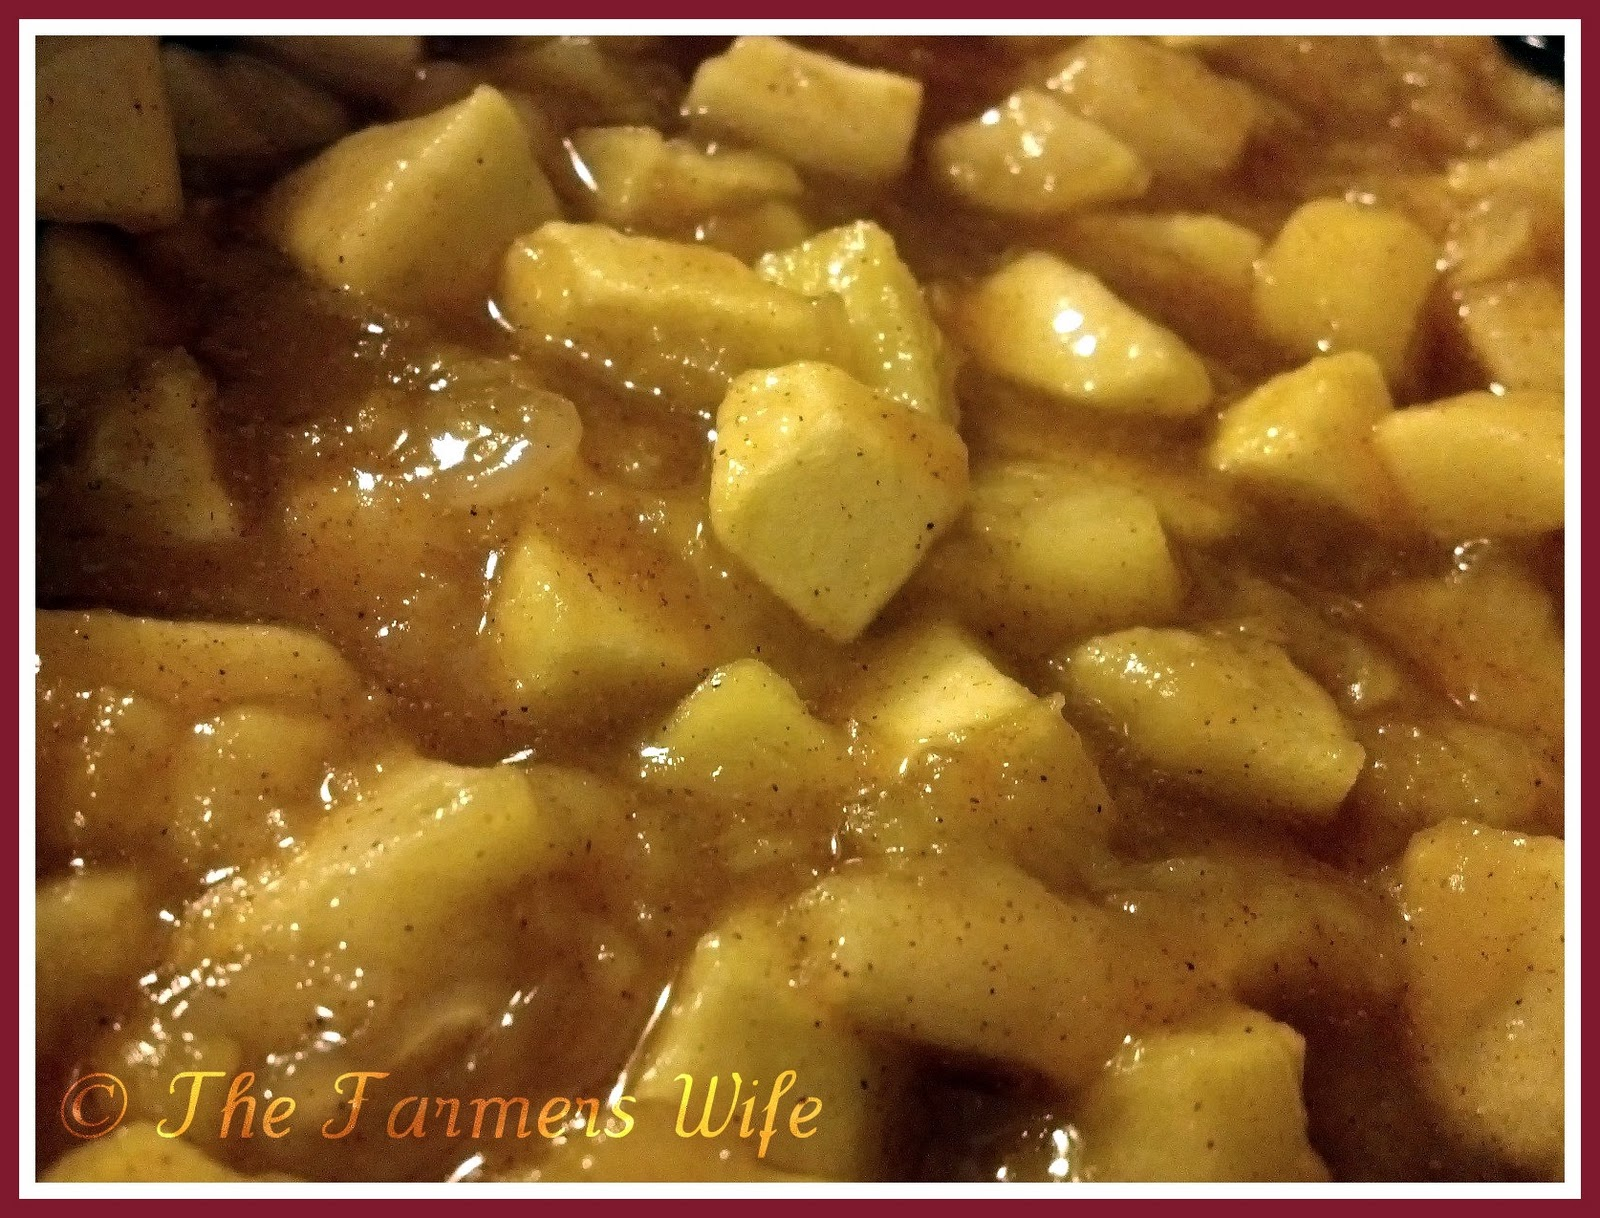 Baked Cinnamon Apples, Farmers Wife Original